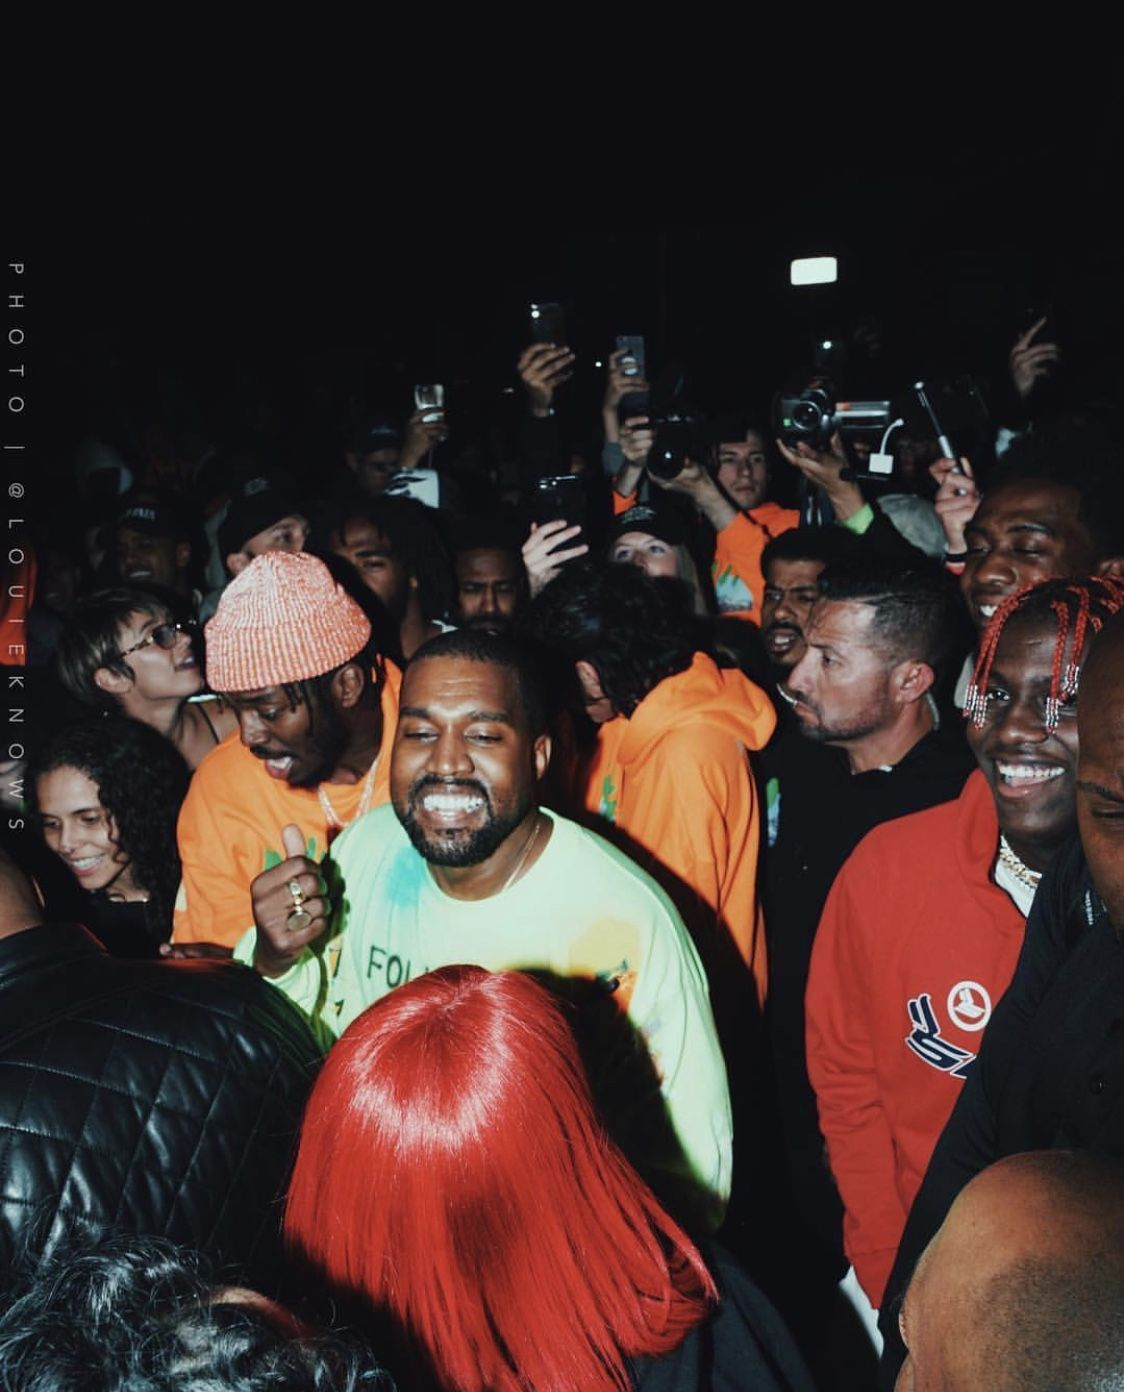 Check Out The Run Of Merch For Kanye West S Ye Listening Party The Faderwww Thefader Com 2018 06 01 Kanye West Wallpaper Kanye West Smiling Kanye West